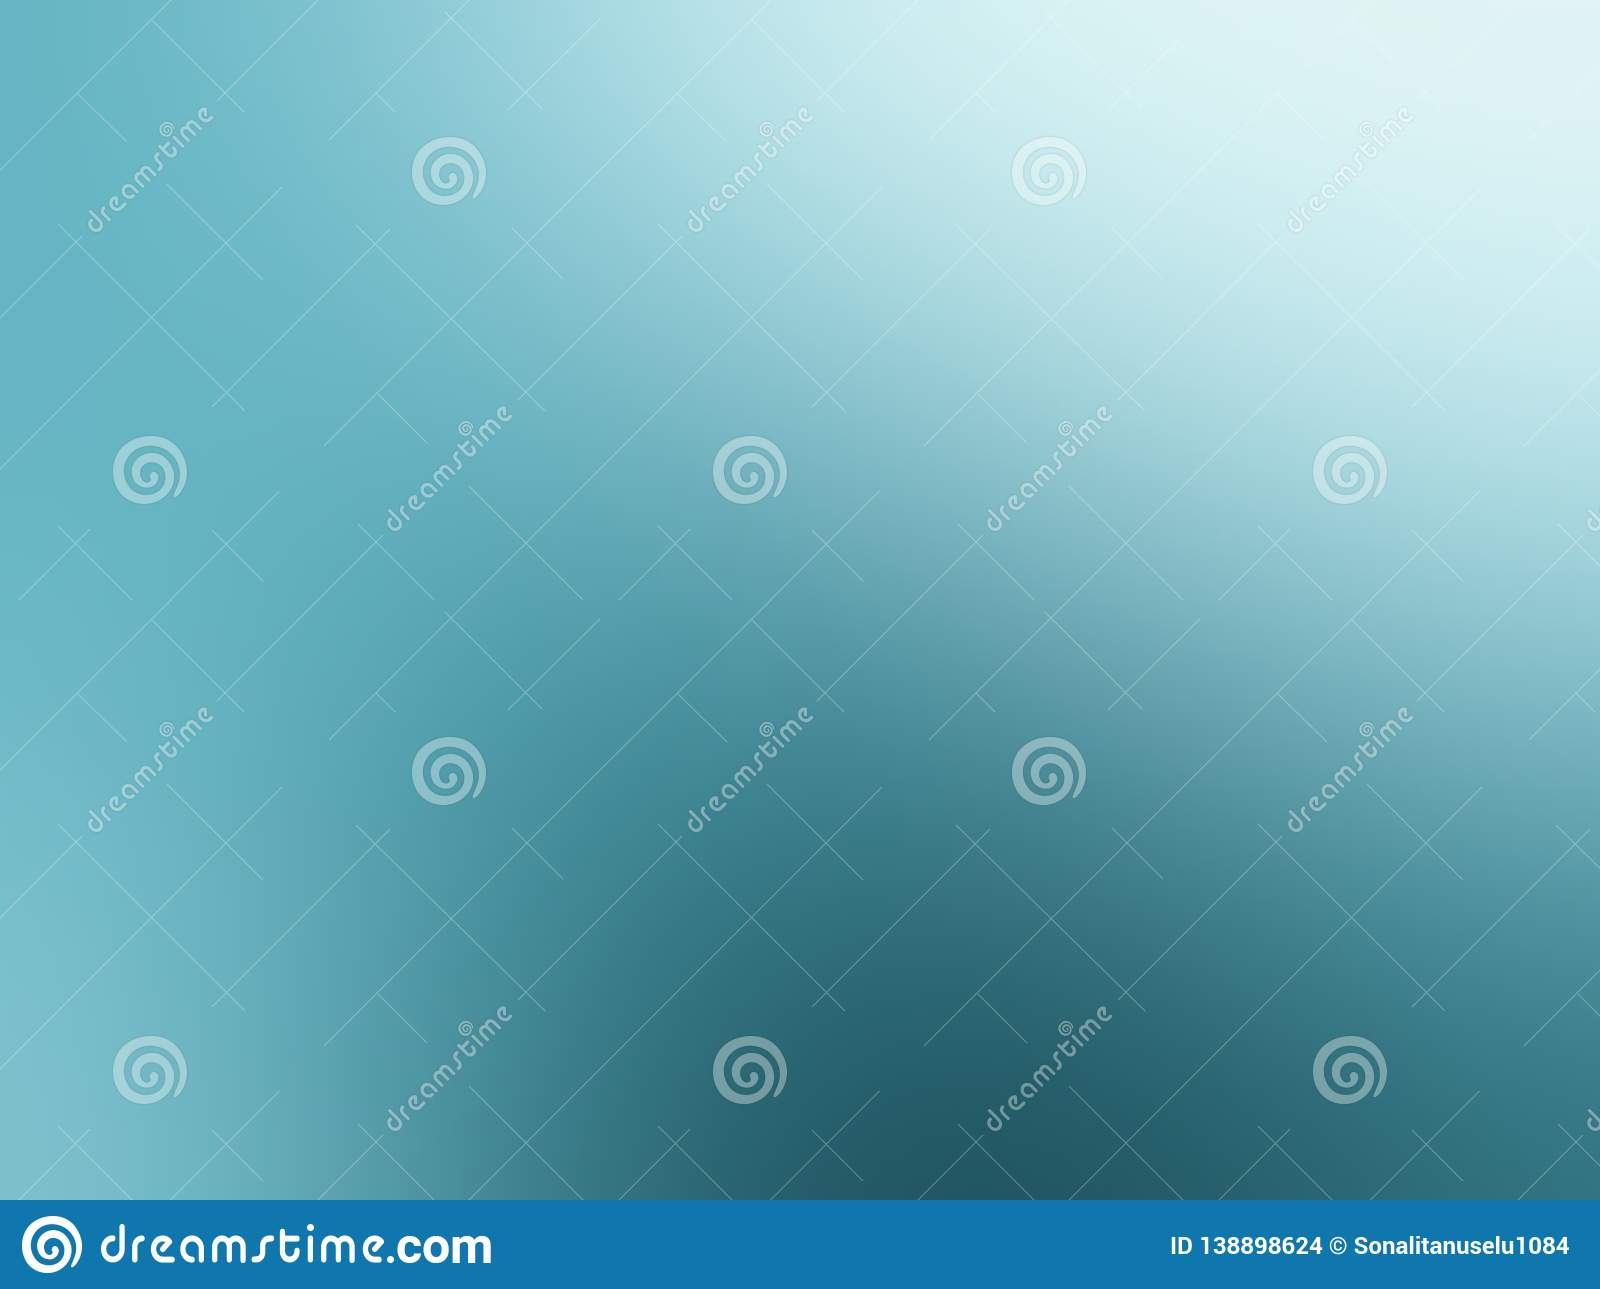 Blue blur abstract background vector design, colorful blurred shaded background, vivid color vector illustration.